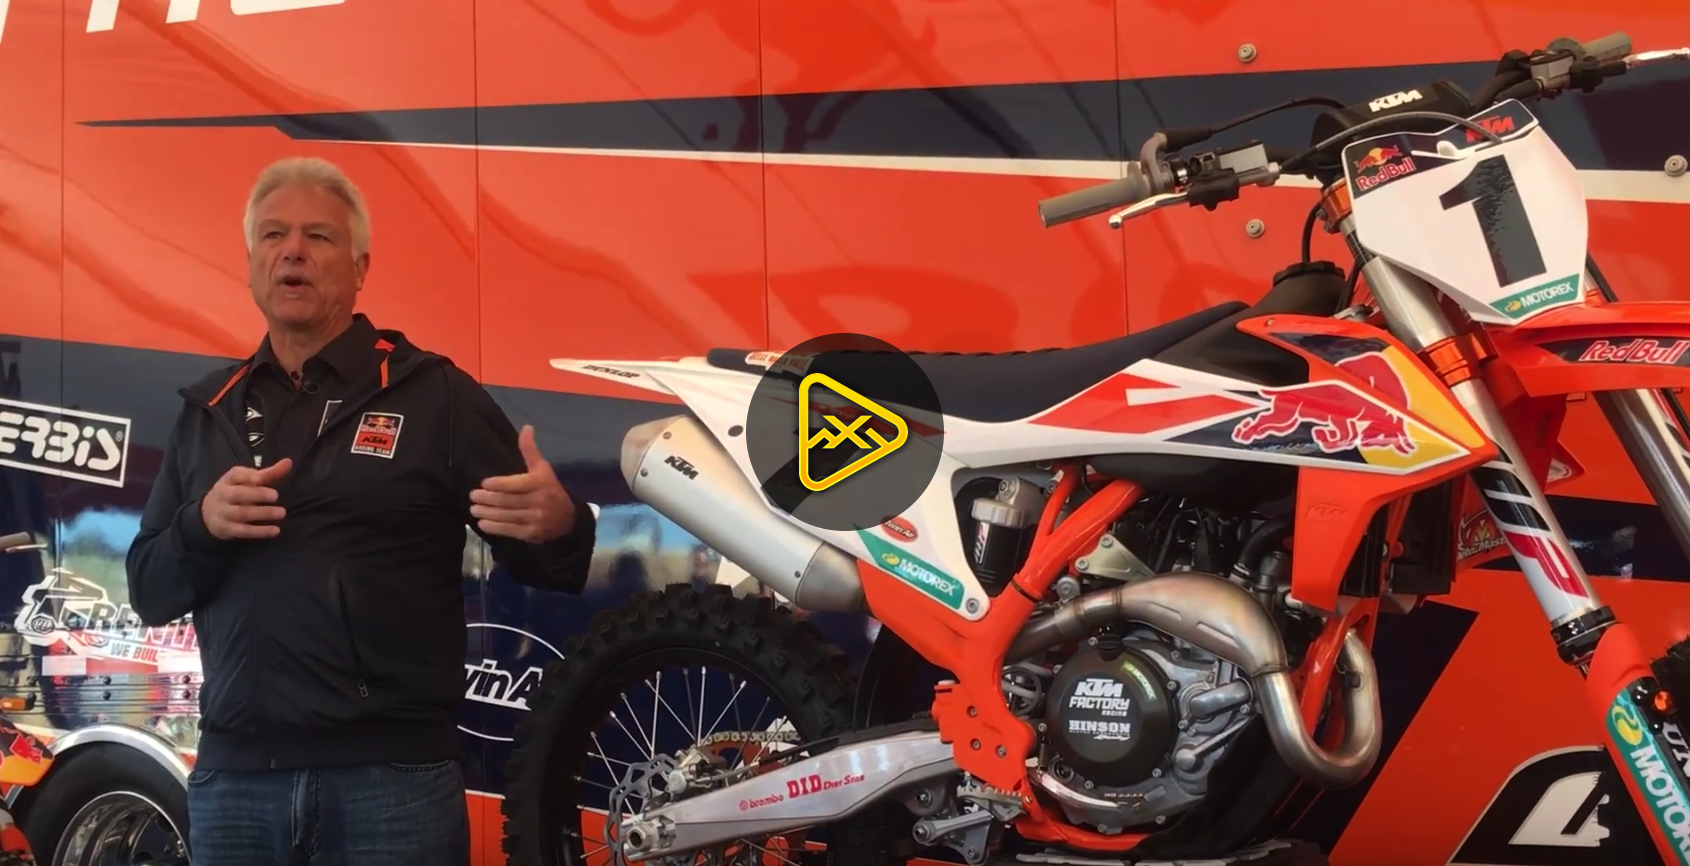 Press Launch Video: 2018/2019 KTM 450 SX-F Factory Edition